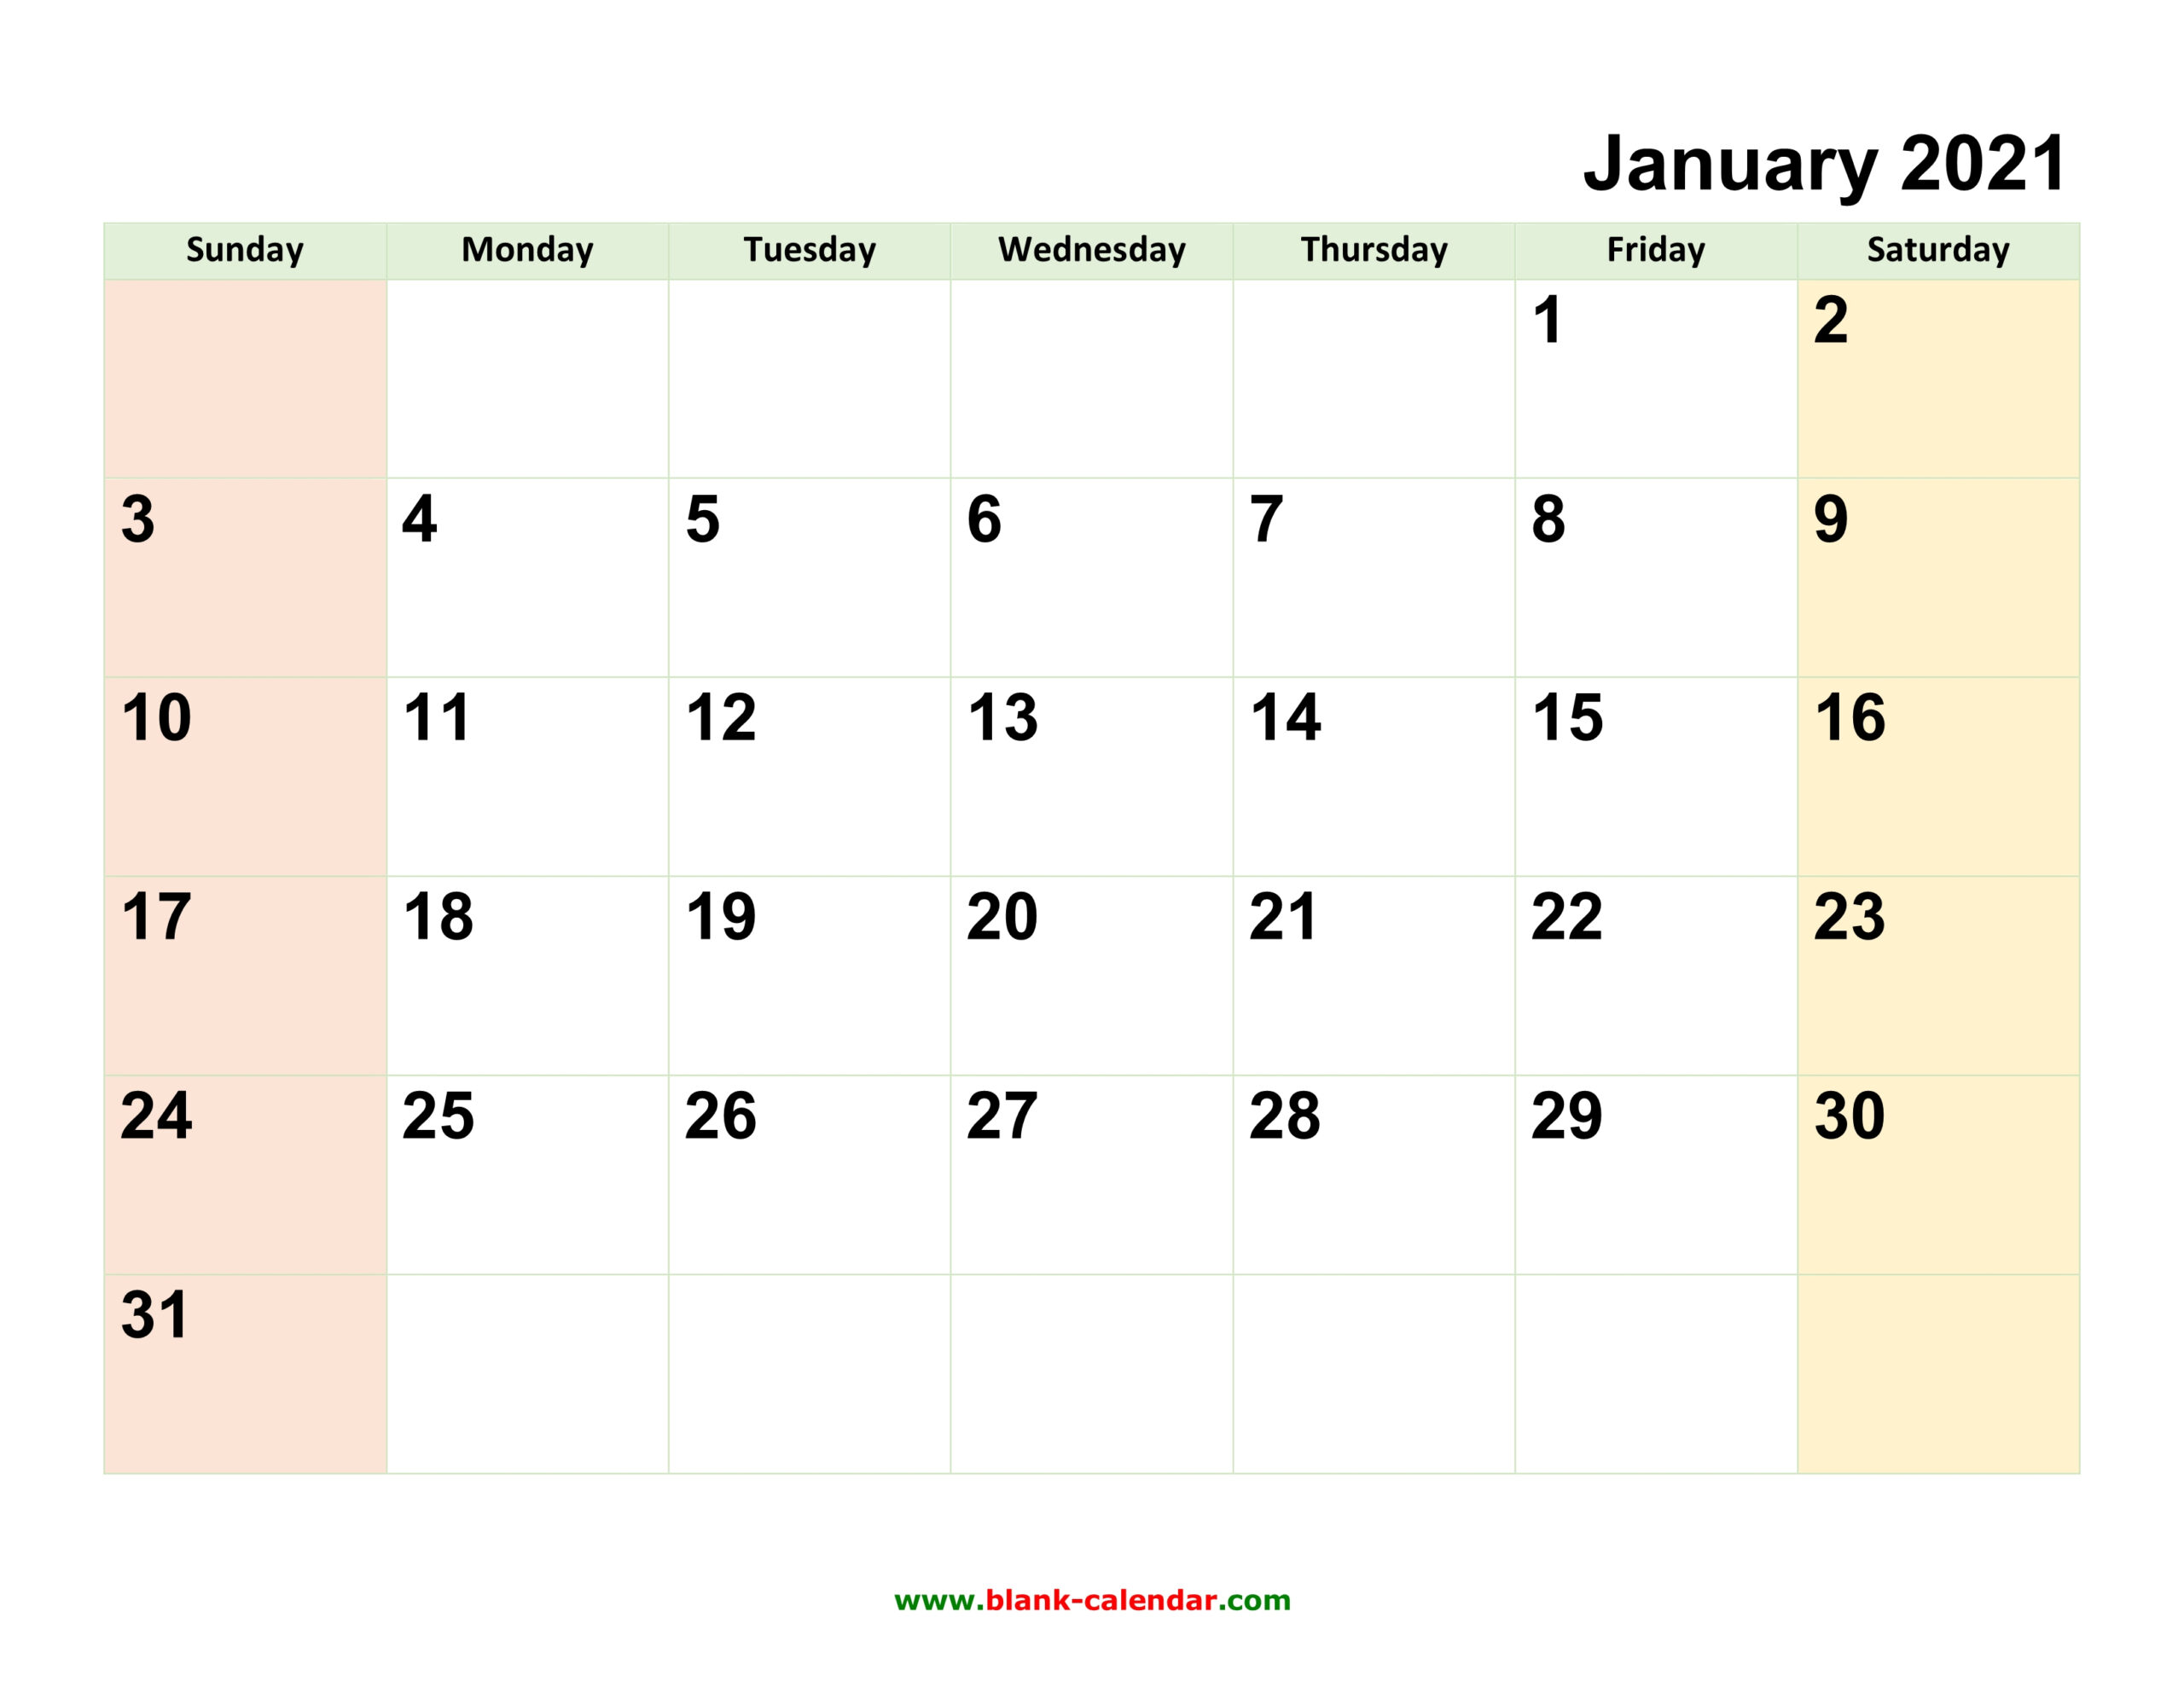 Monthly Calendar 2021   Free Download, Editable And Printable intended for Printable Blank Fill In Monthly Calendar 2021